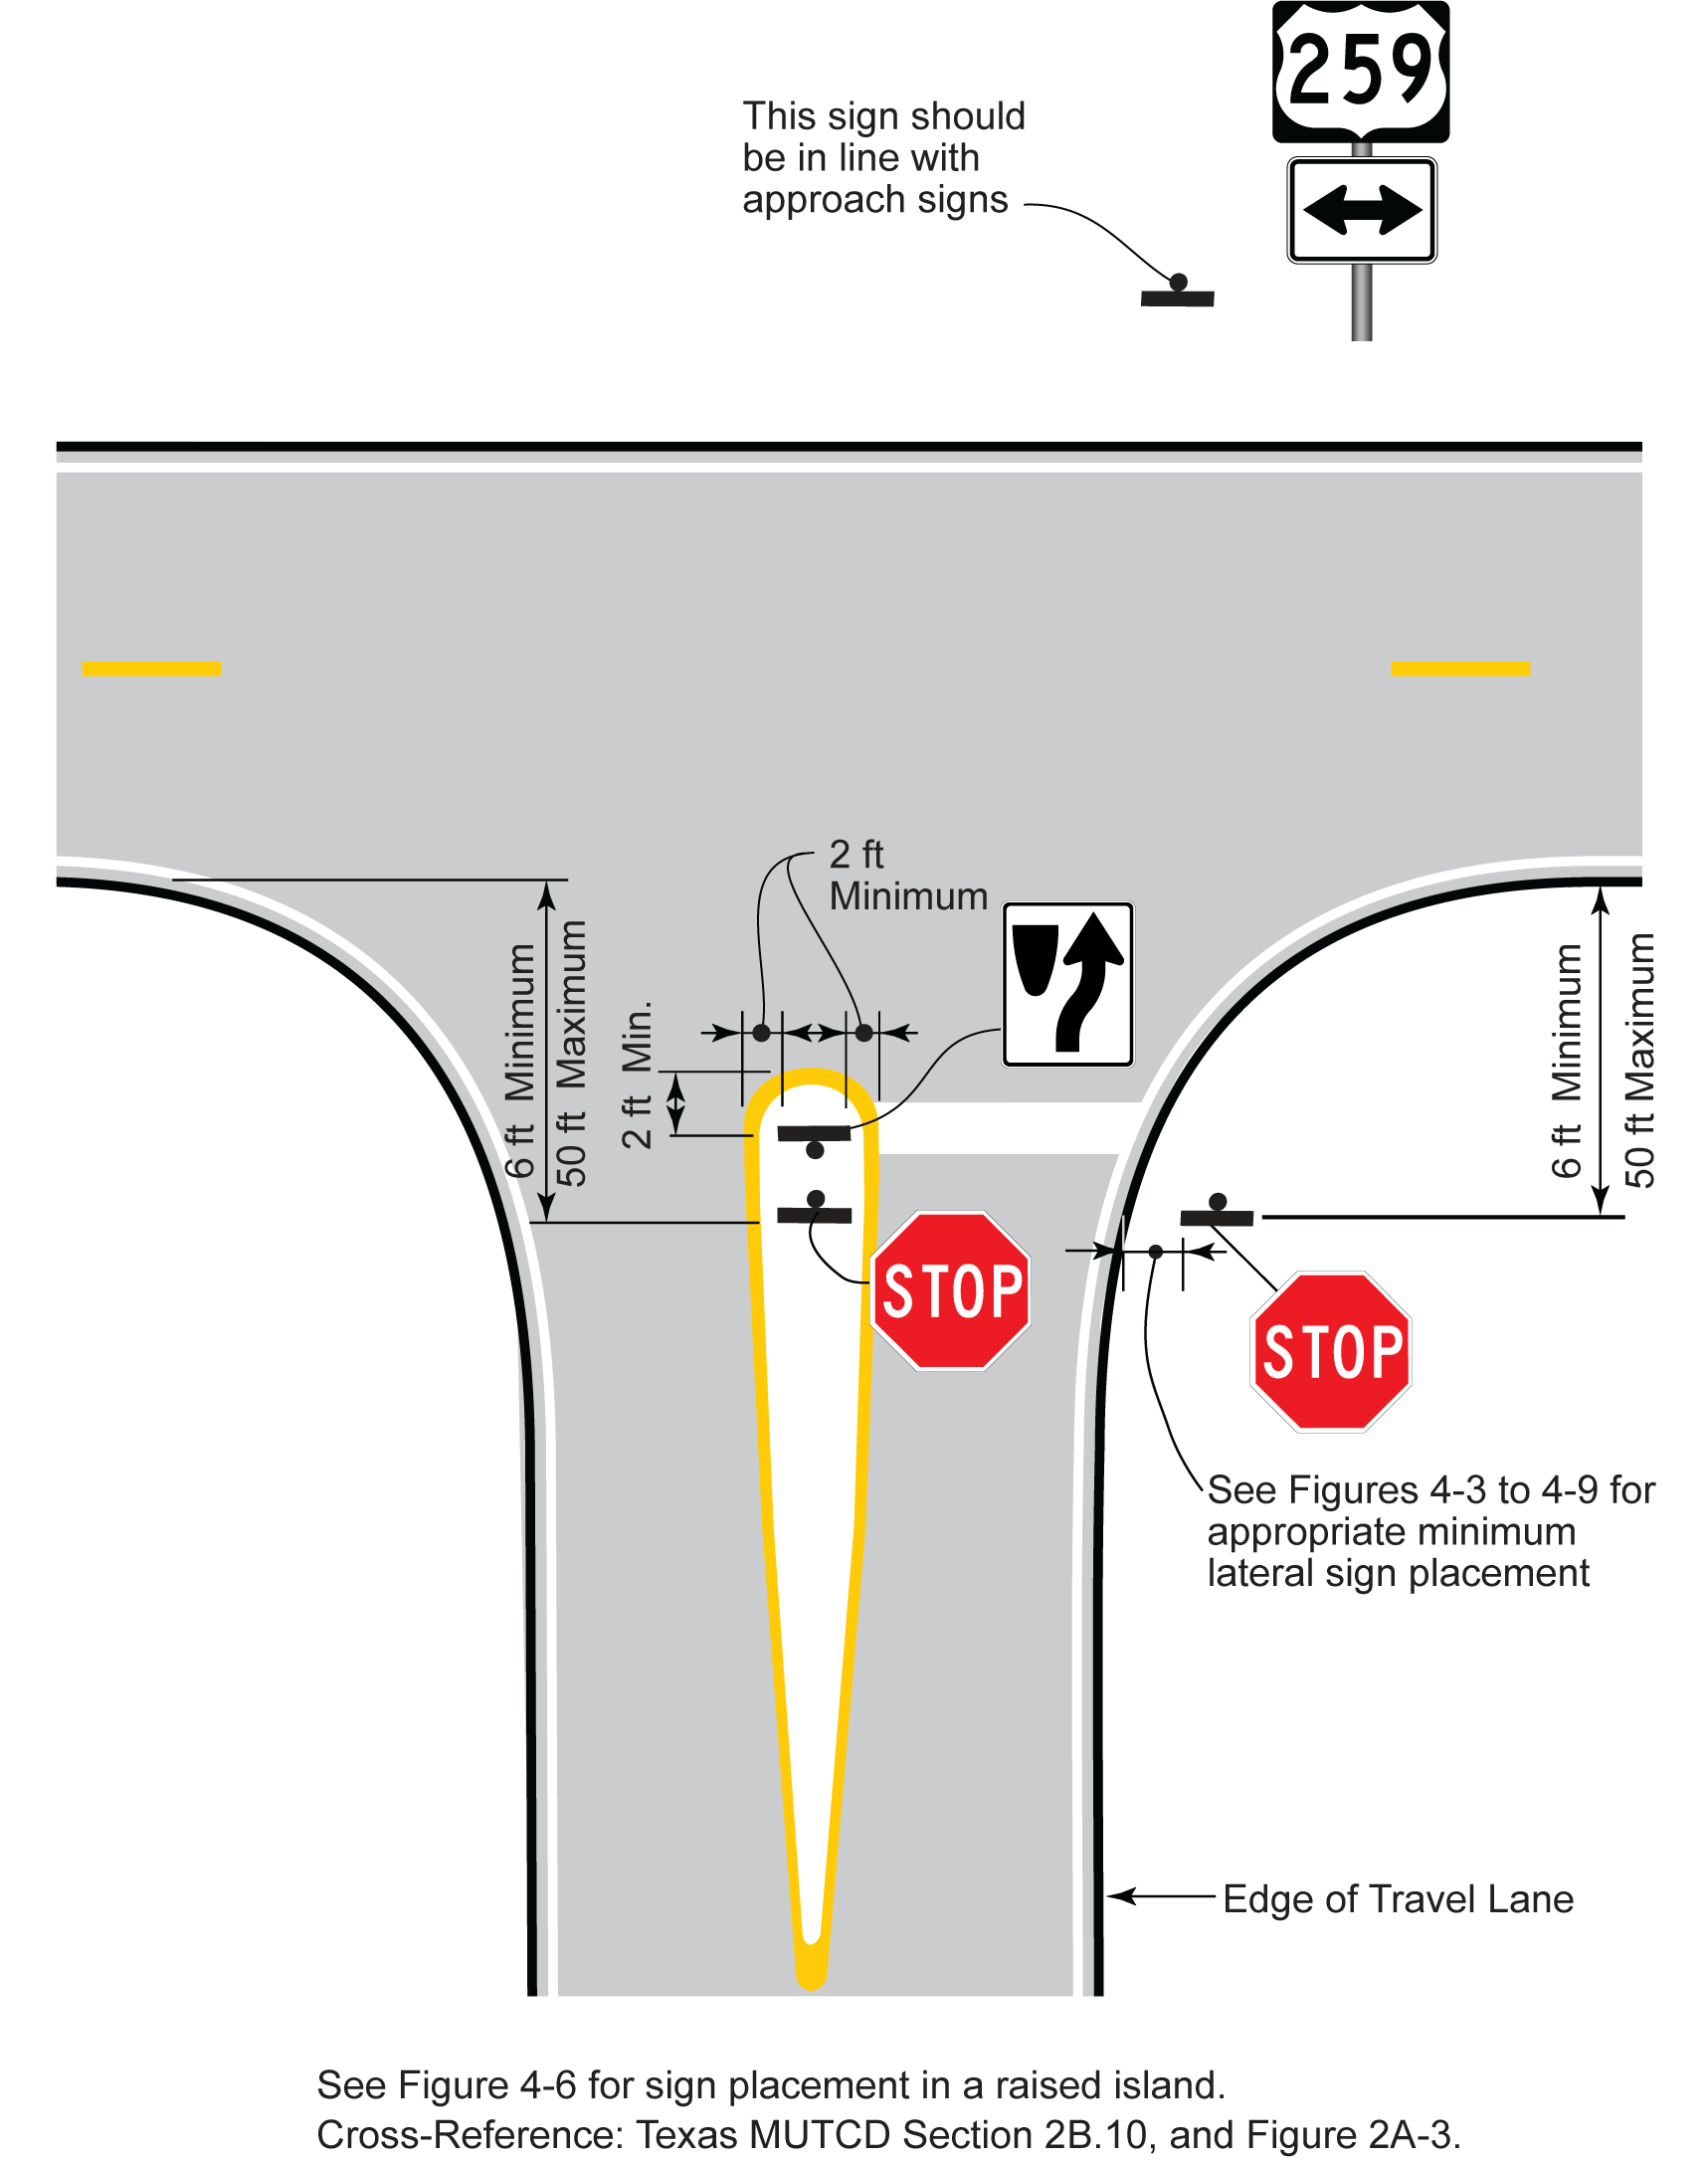 Sign Crew Field Book: Lateral Placement at Intersections